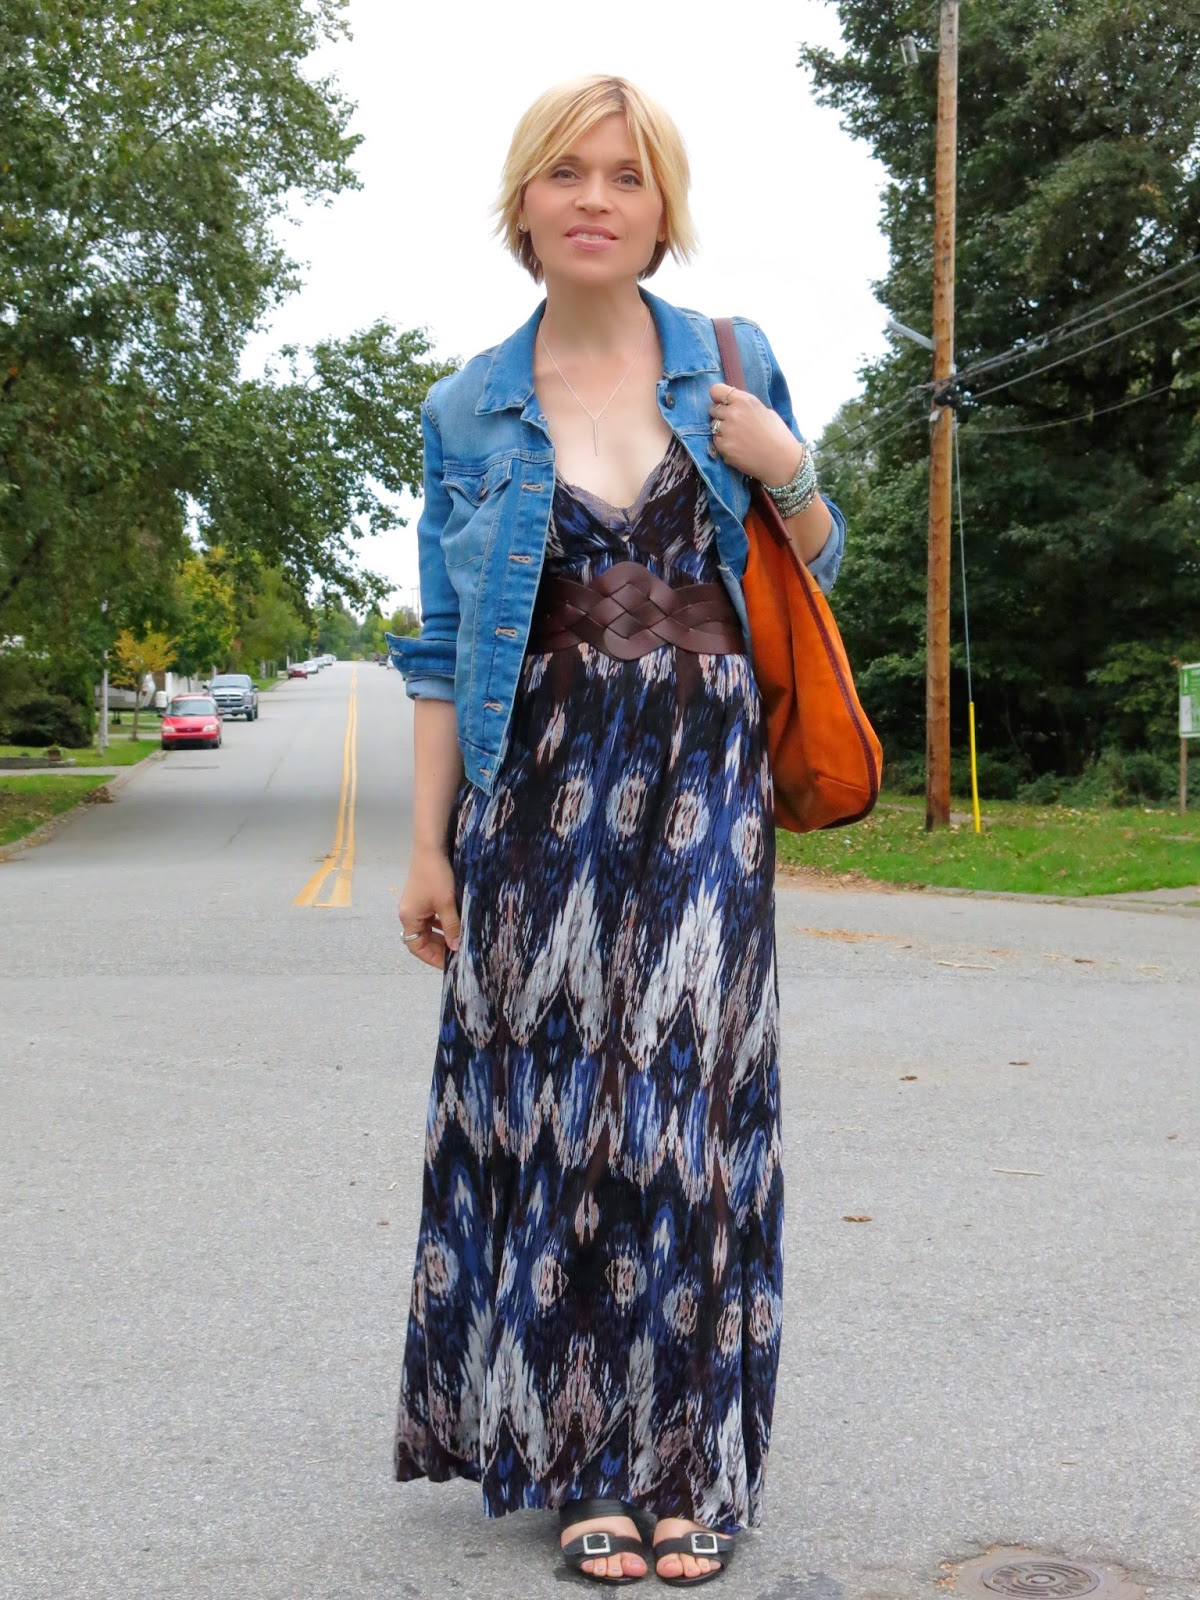 styling a printed maxi-dress with a corset belt and denim jacket